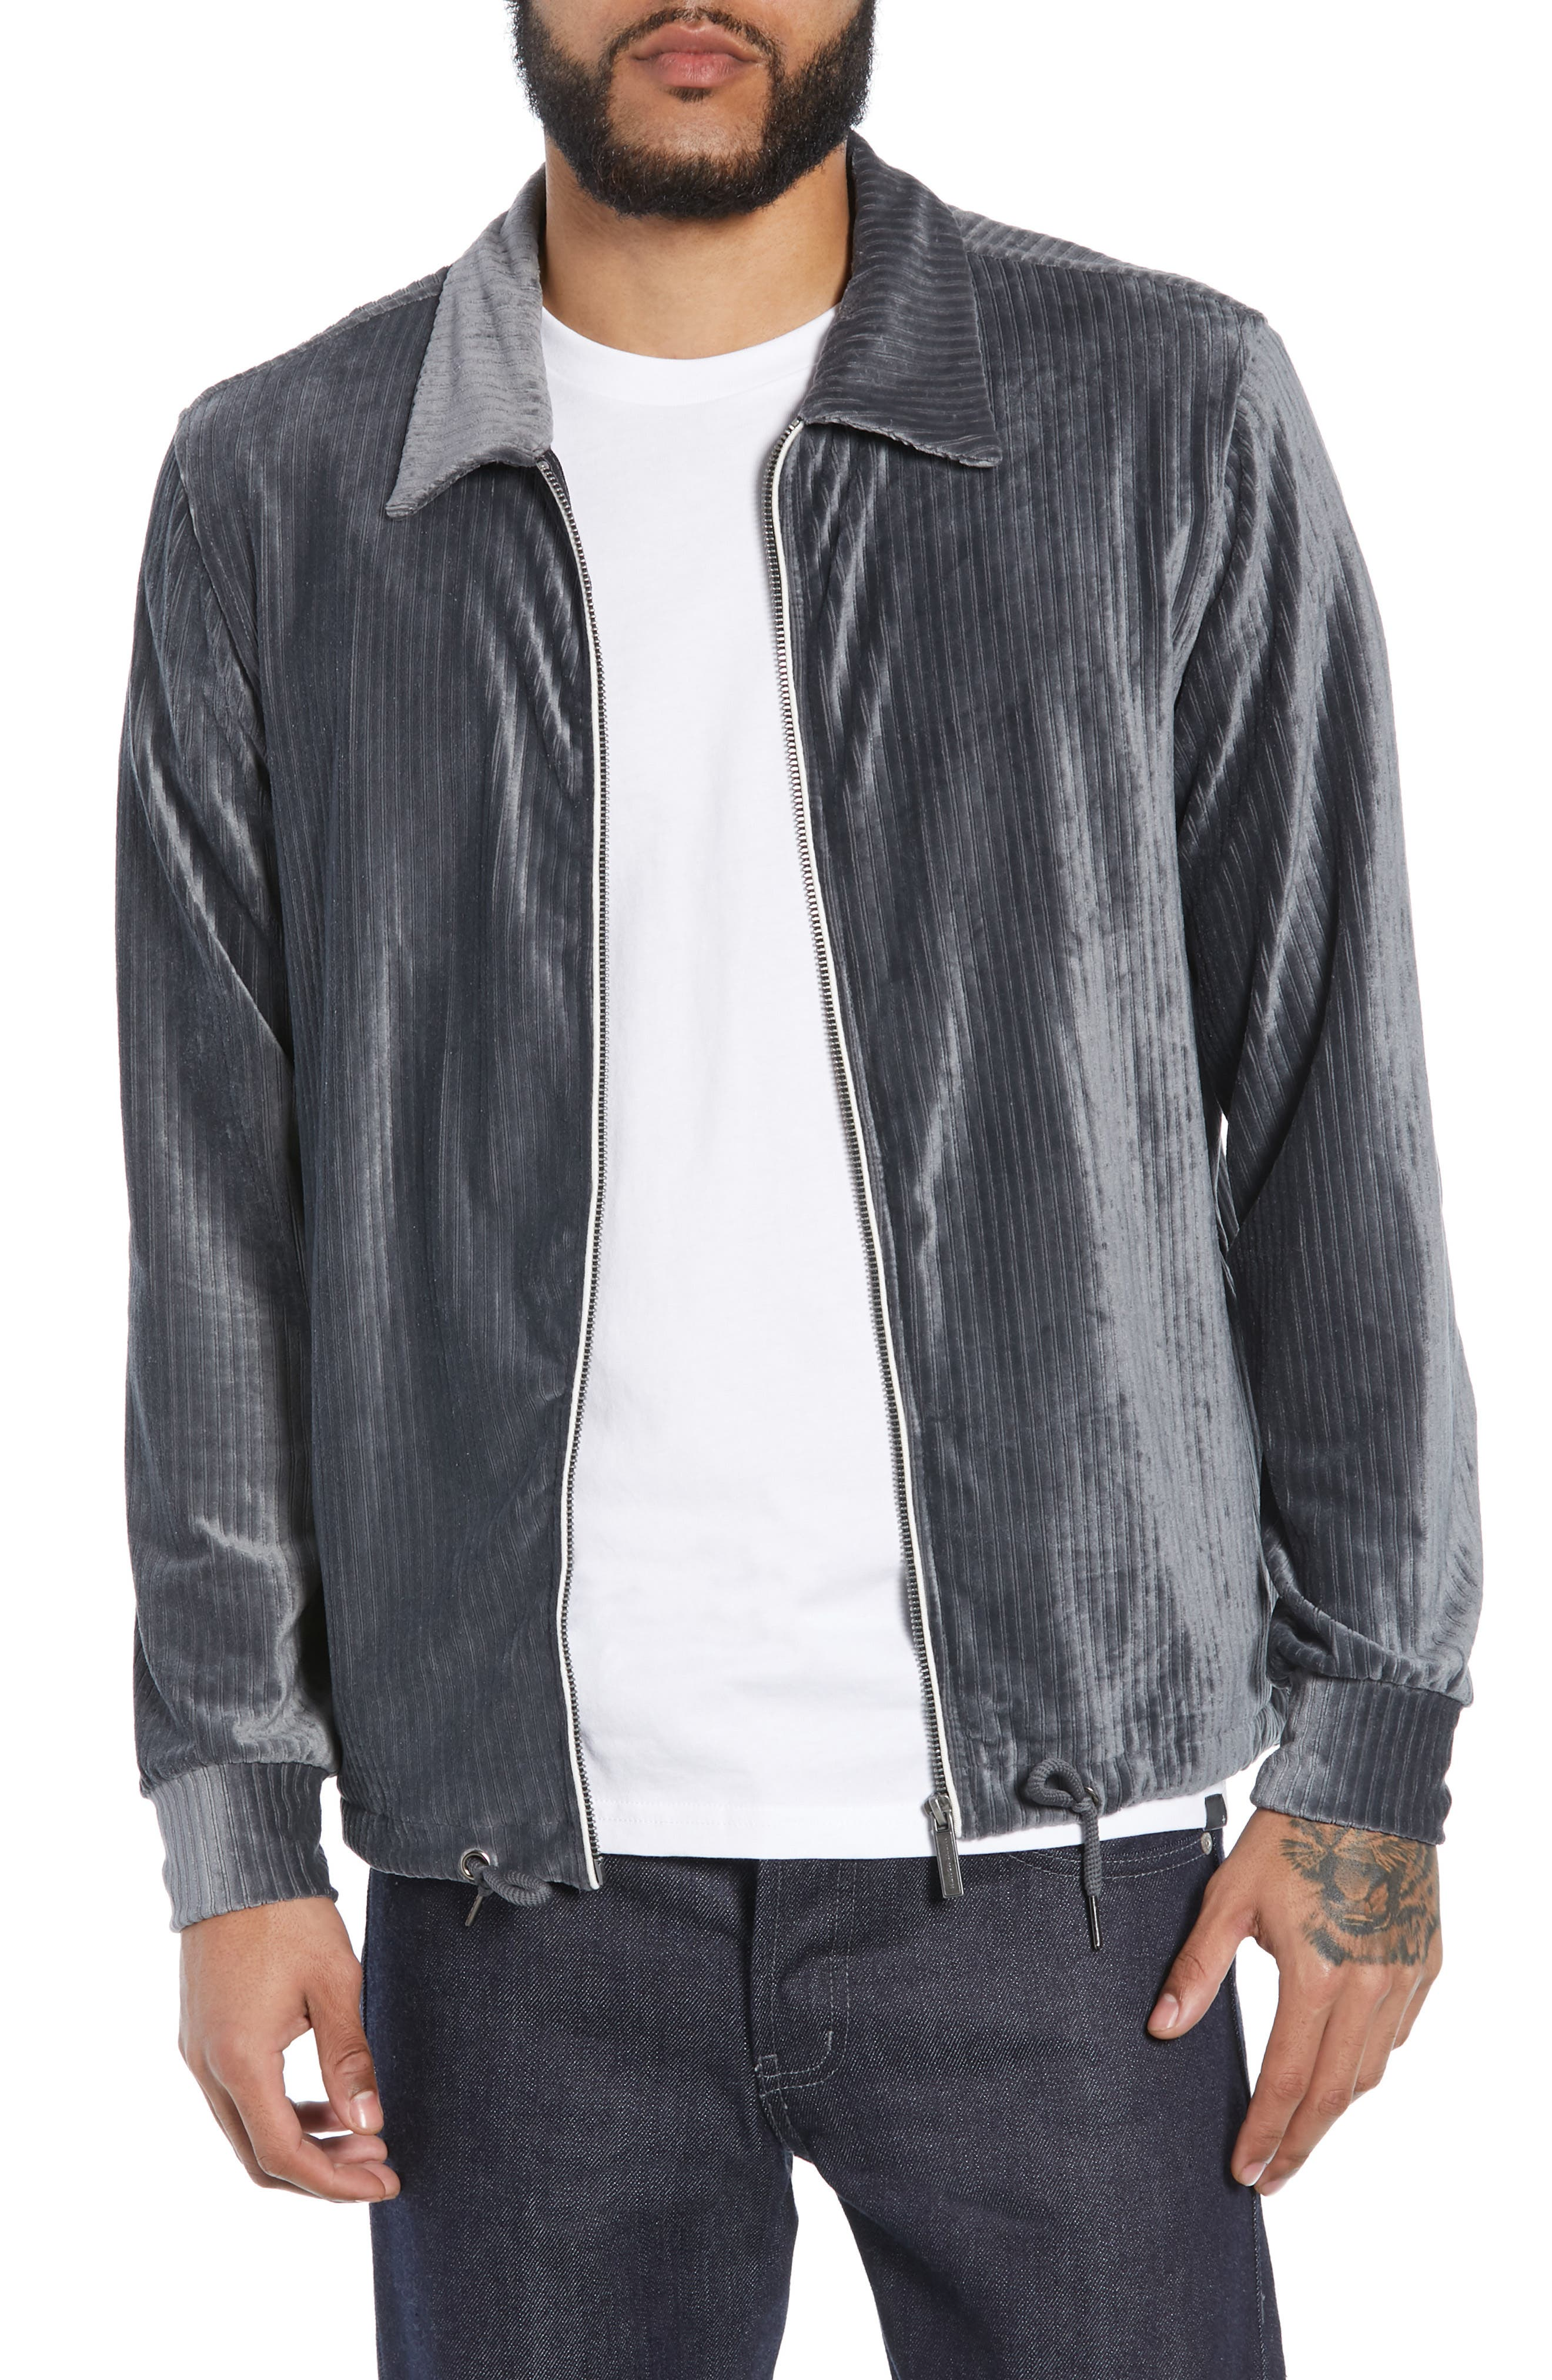 NATIVE YOUTH Ribbed Velour Jacket in Grey